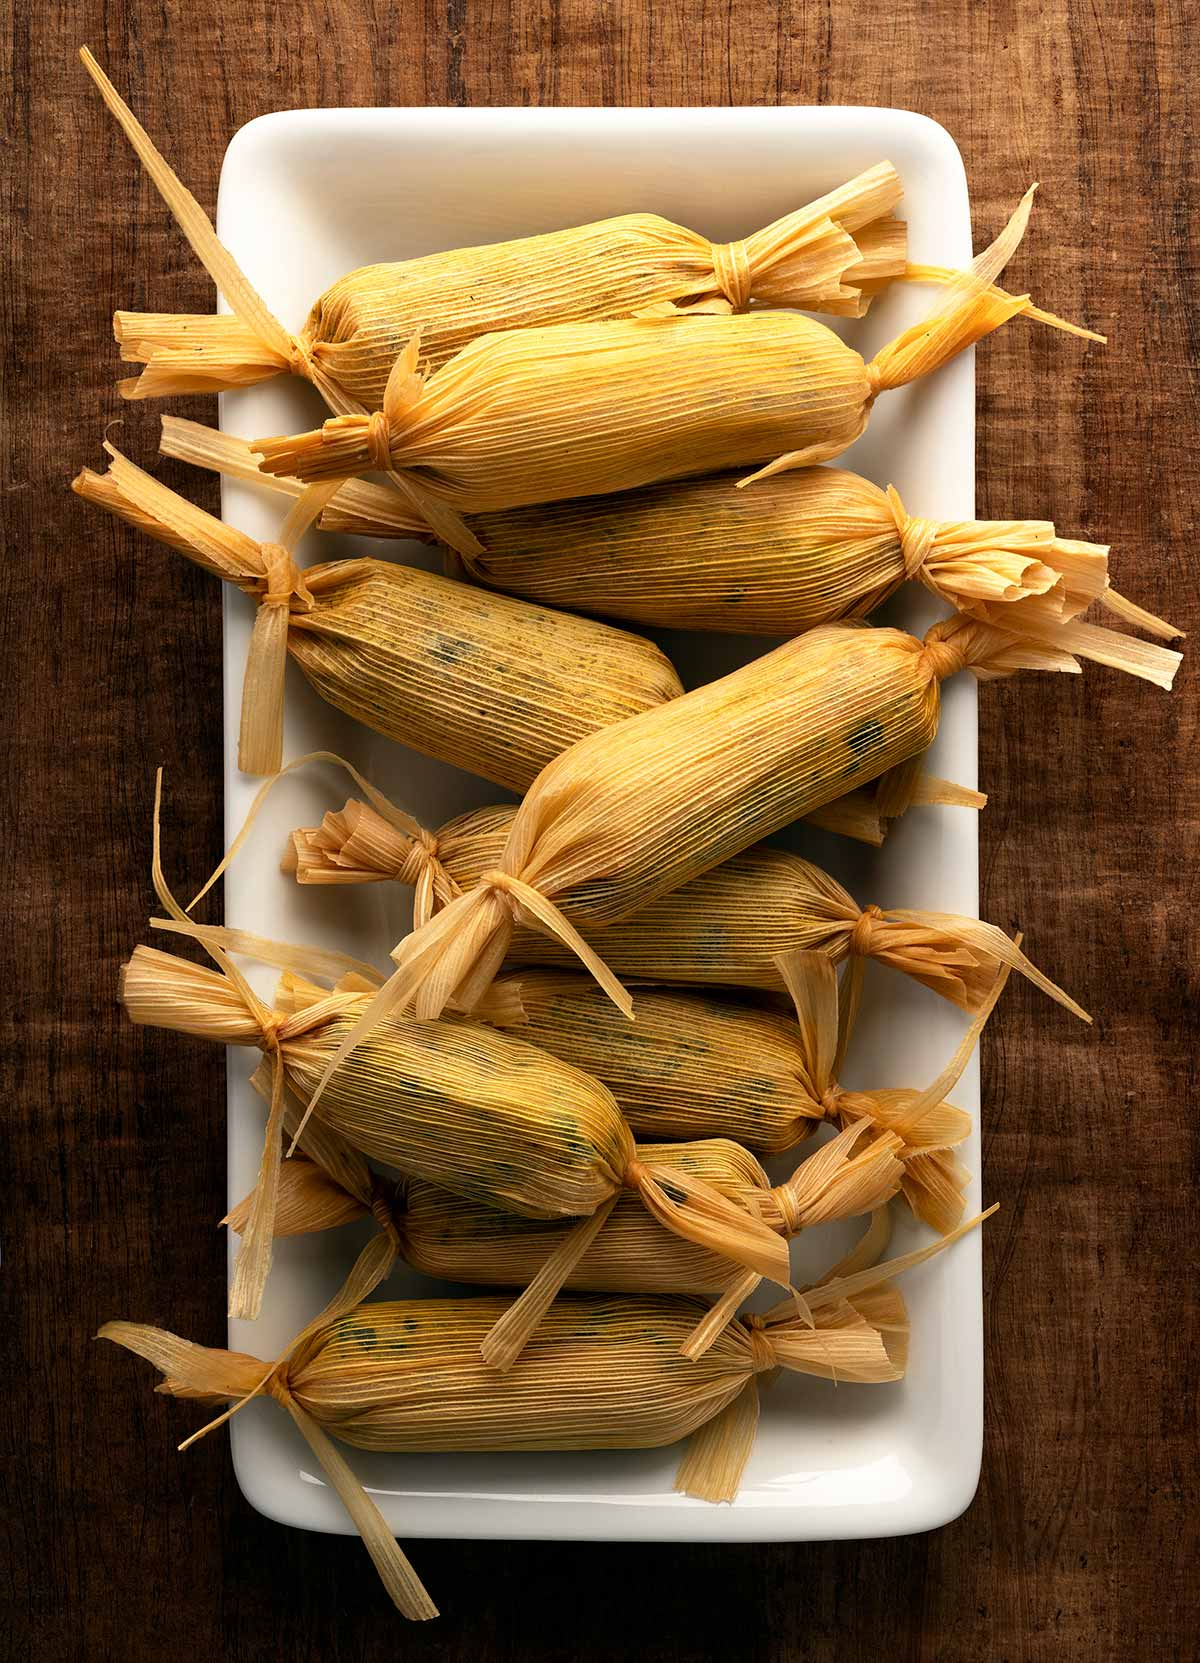 Chaya tamales in the husk on a plate